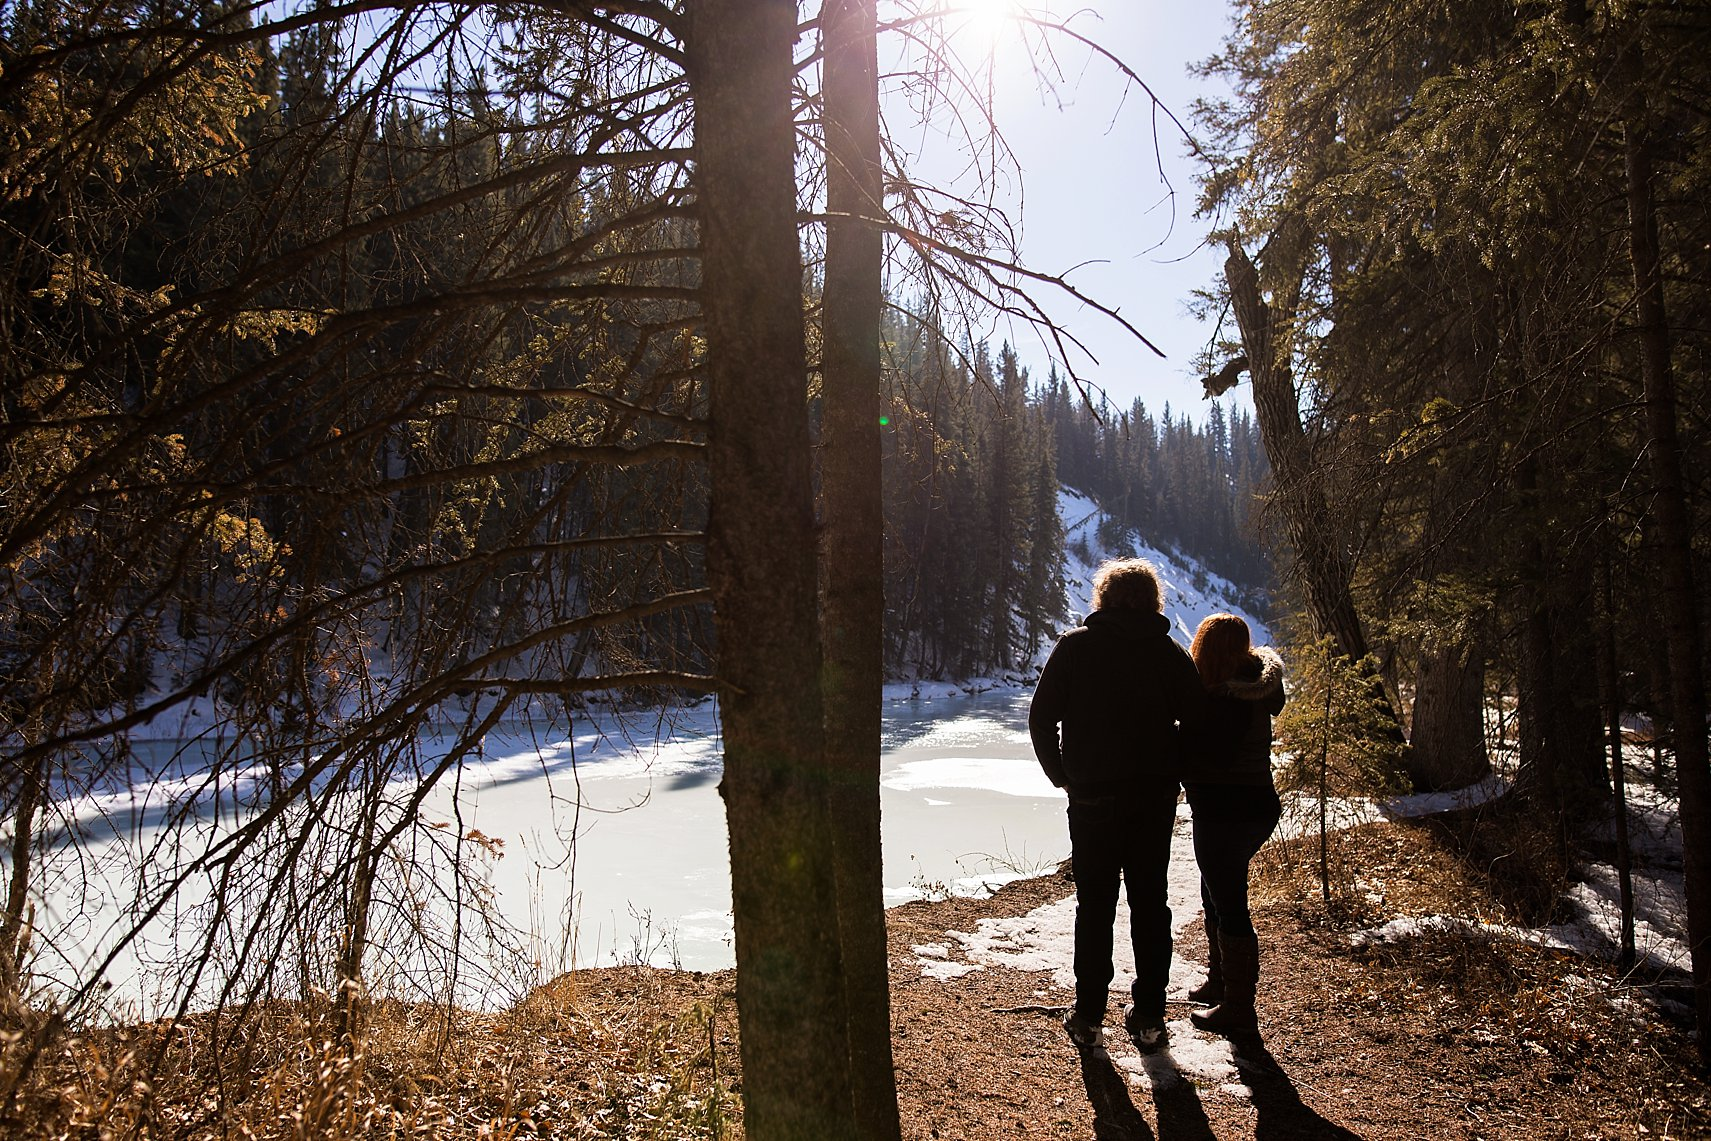 Sneak Peek Calgary Winter Engagement Session Emily Exon Photography I've been following them for a while now. emily exon photography